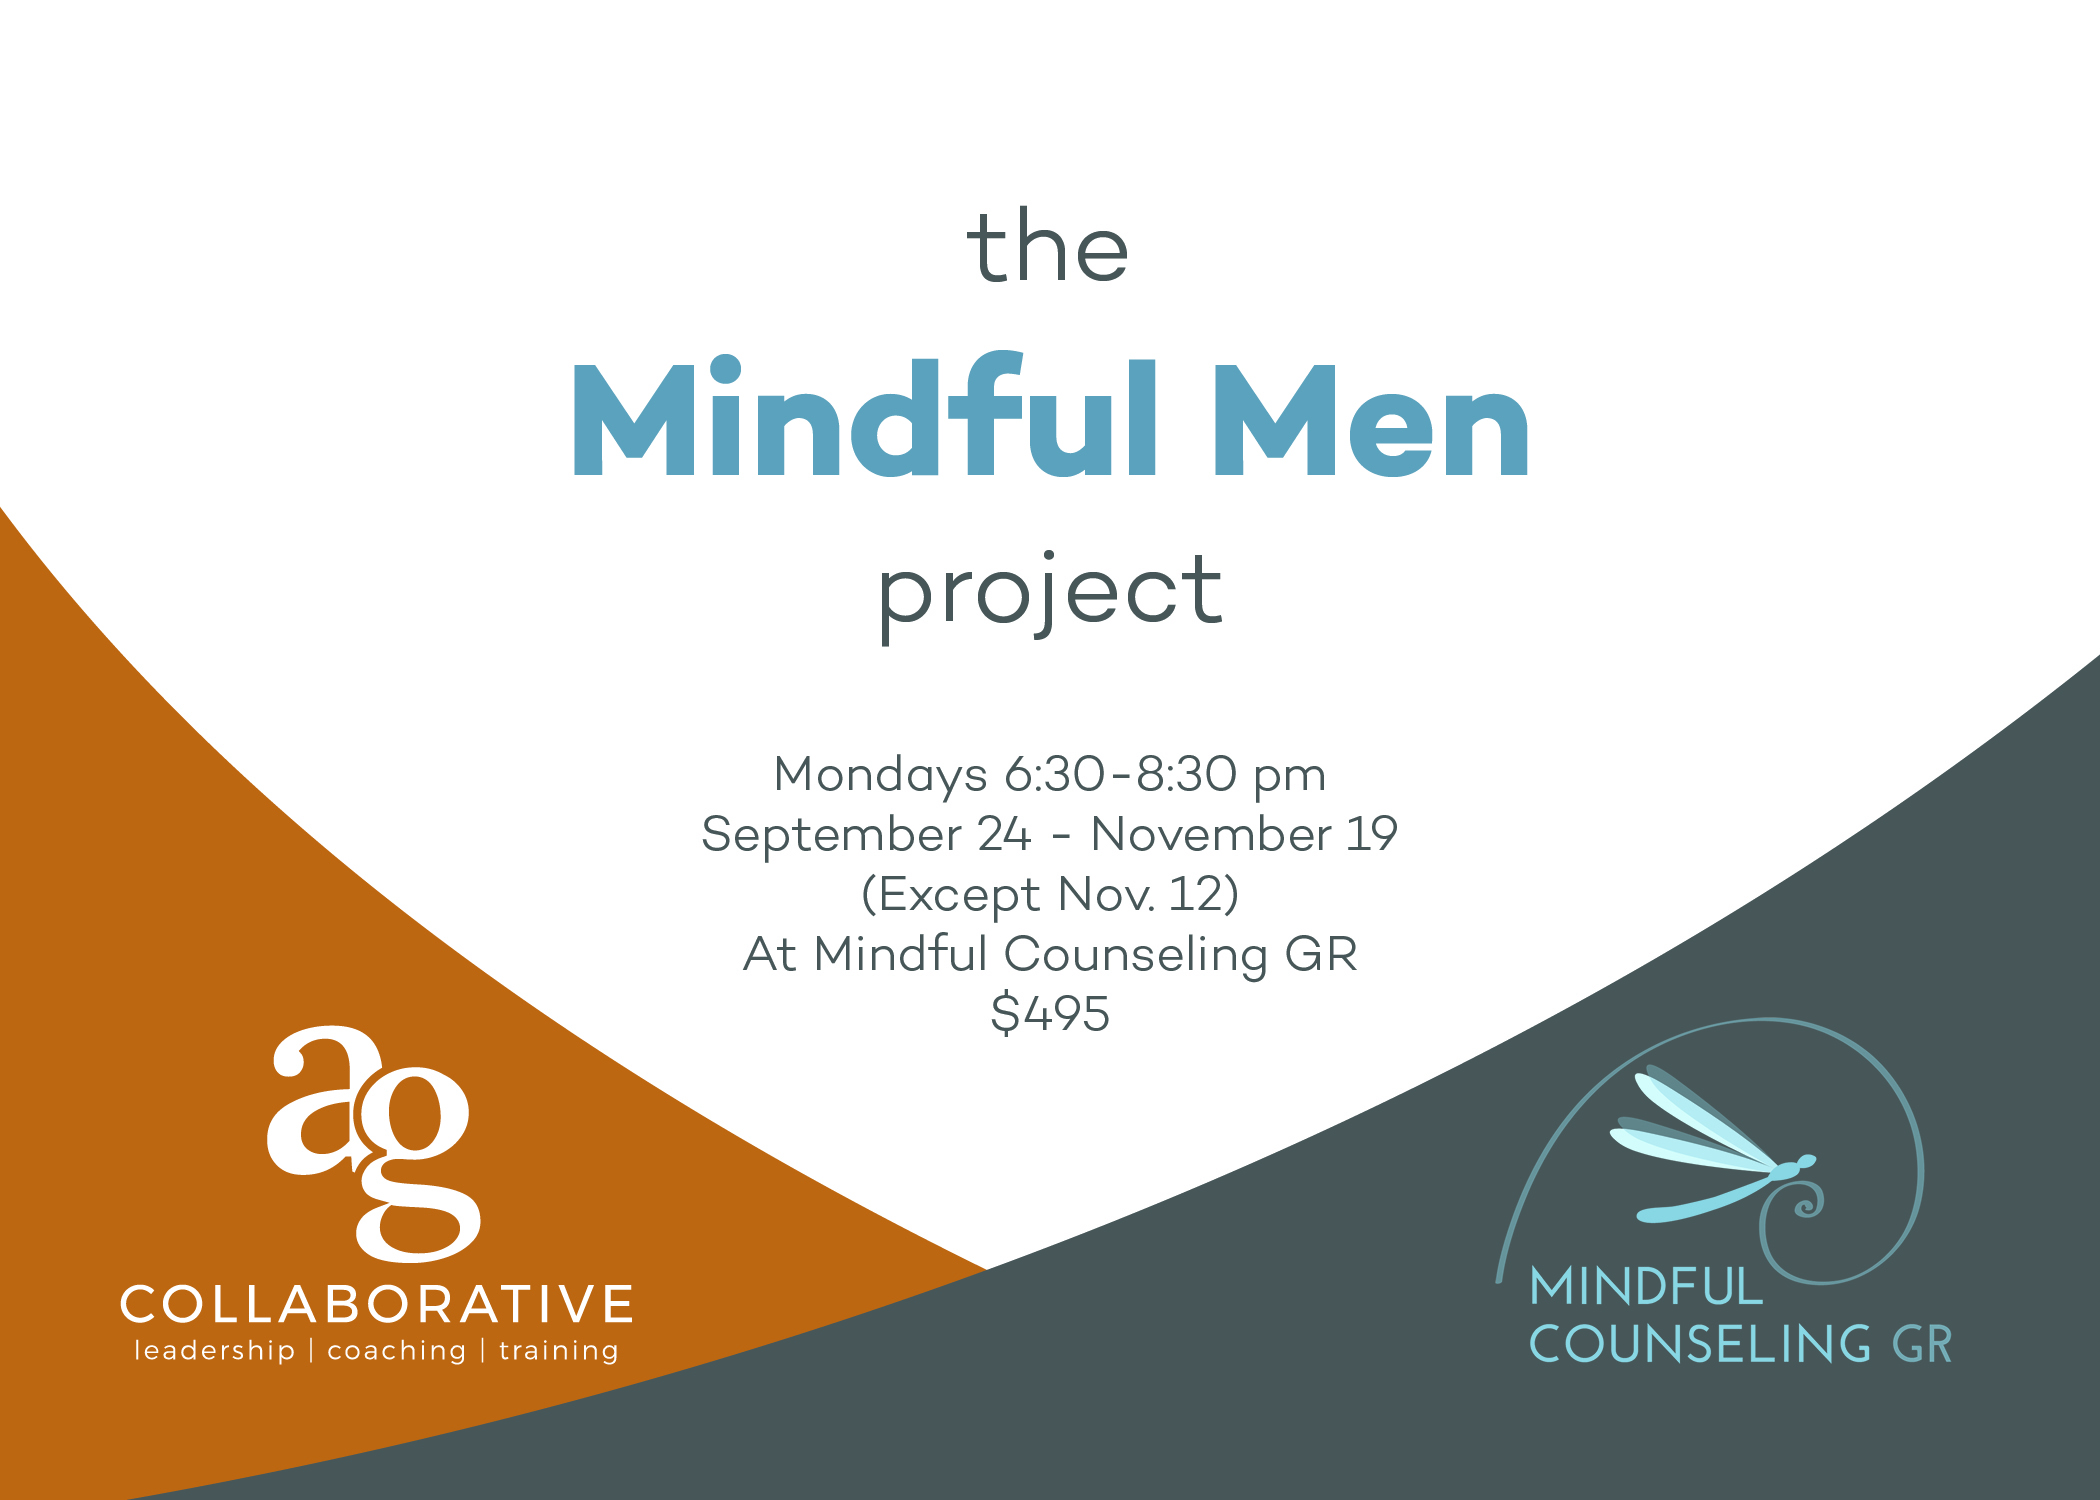 Marketing - The Mindful Men Project.jpg